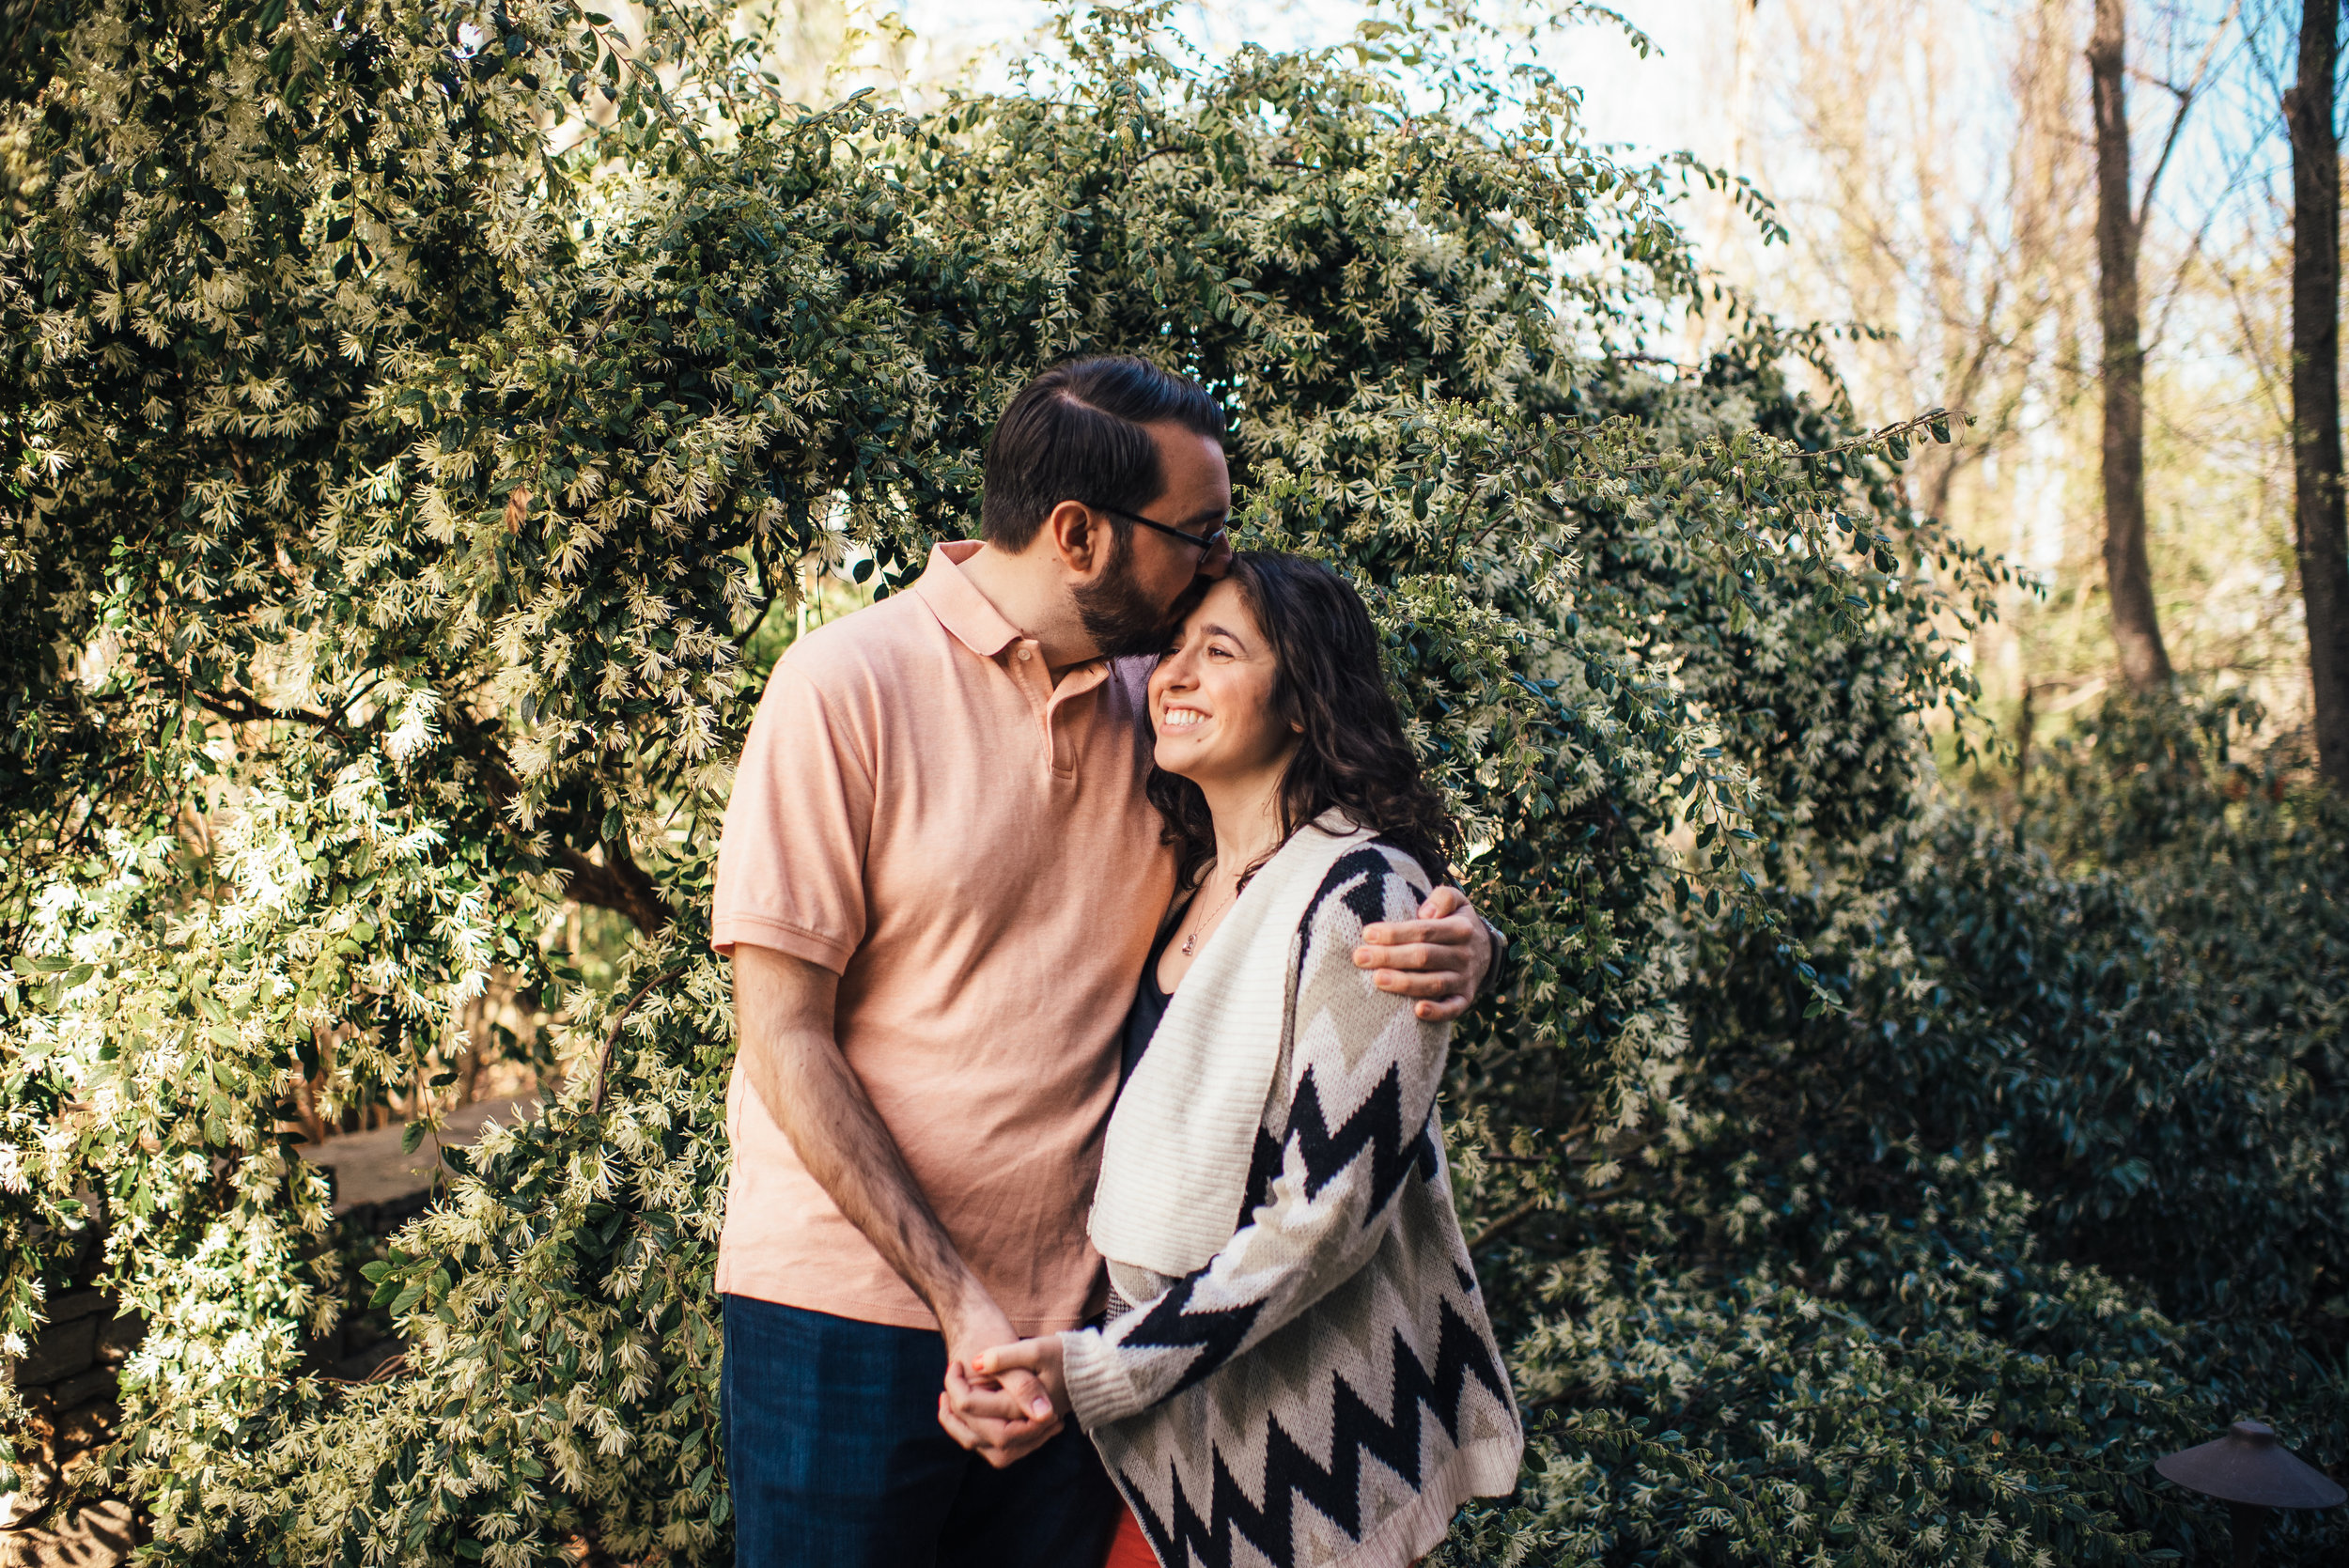 JC Raulston Engagement - Downtown Raleigh Engagement - Raleigh Wedding Photographer - North Carolina Wedding Photographer - Spring Engagement Session